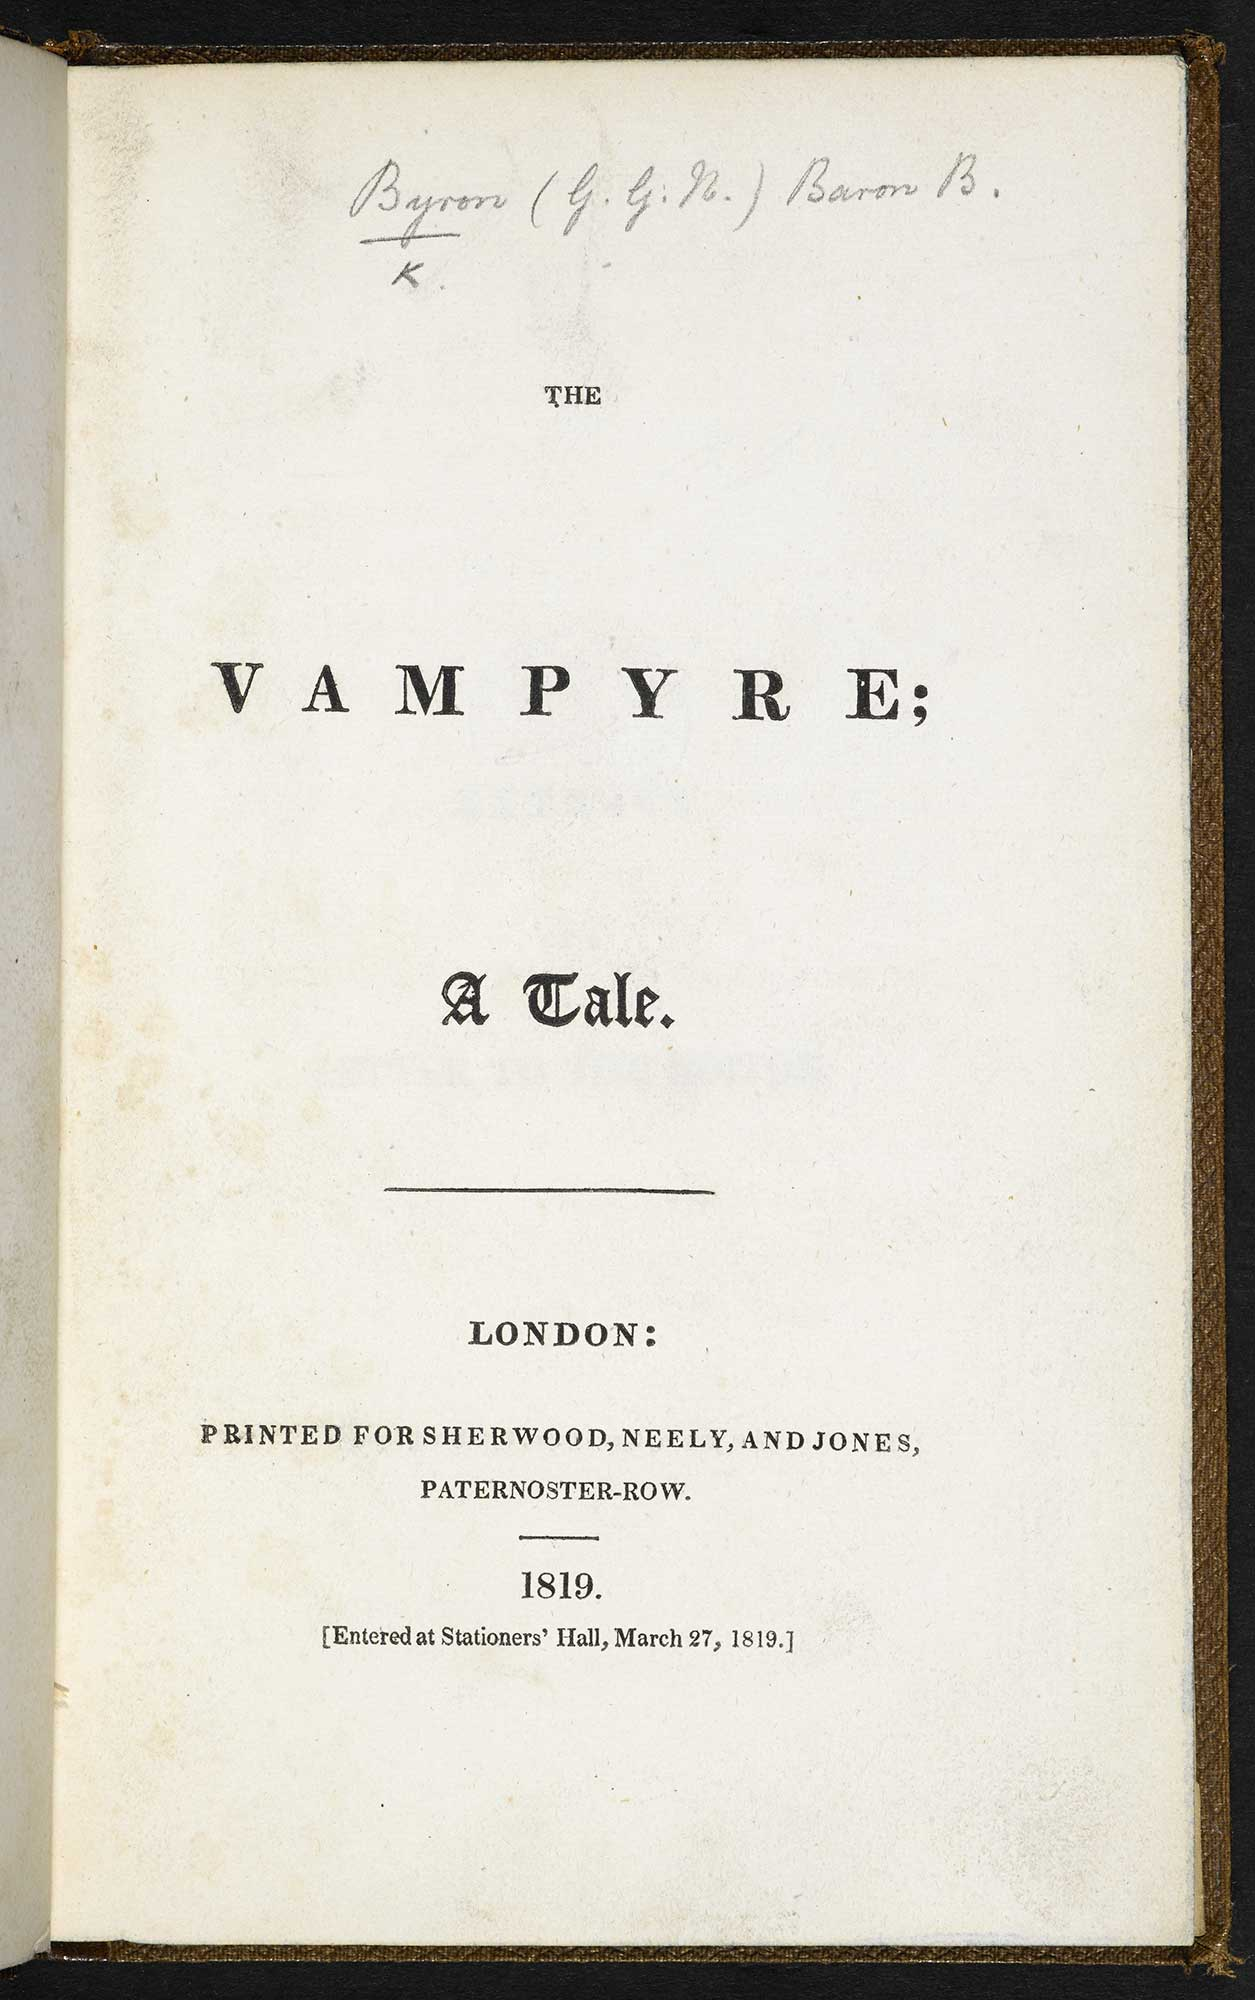 The Vampyre by John Polidori [page: title page]